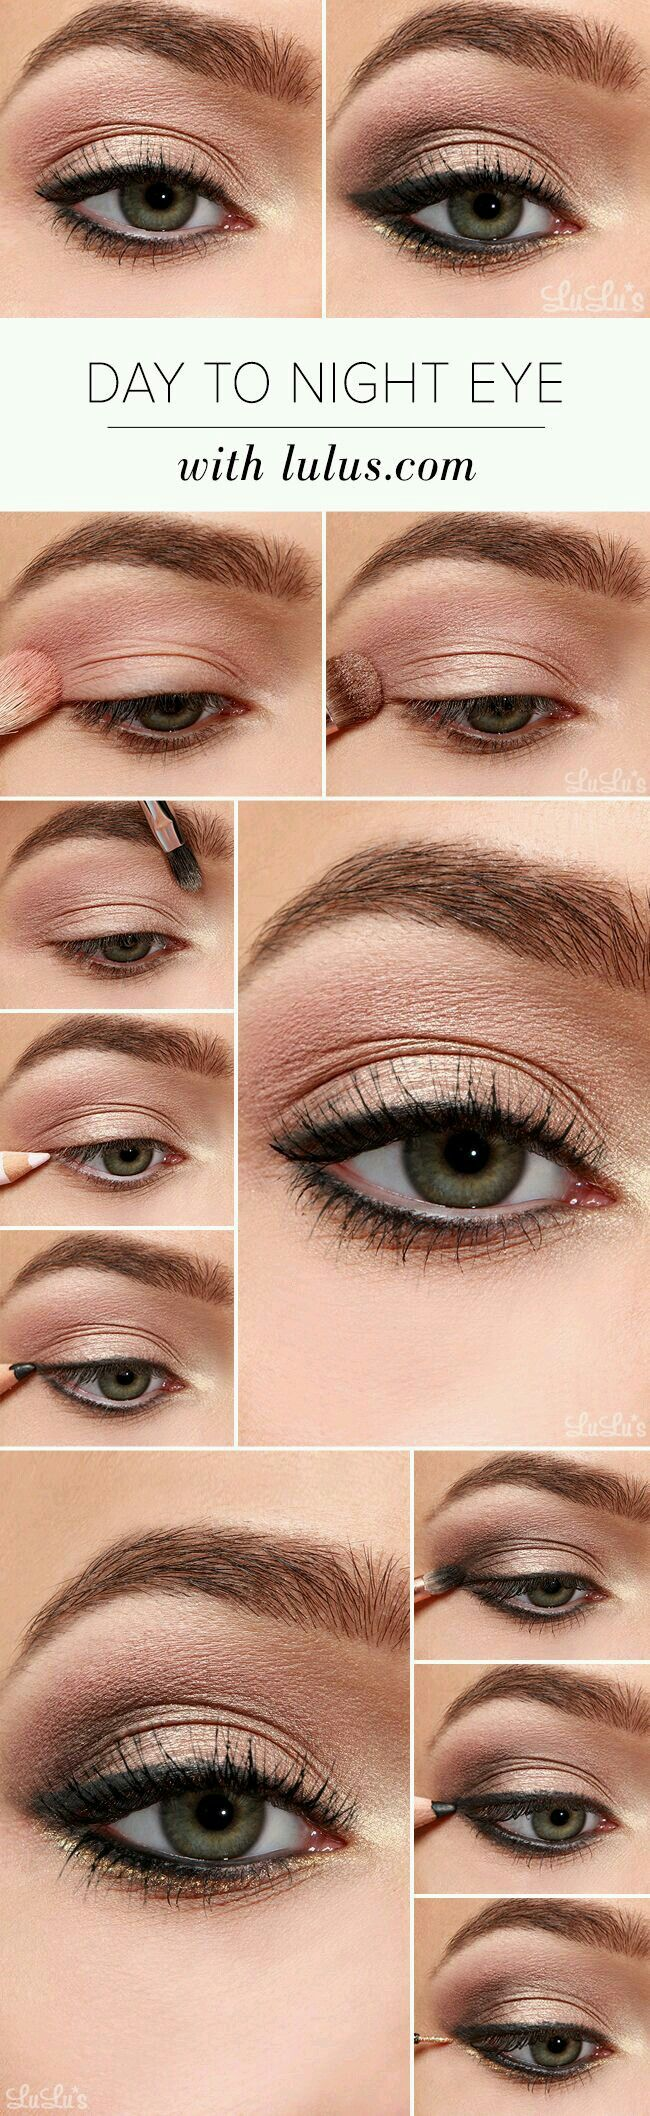 Day to Night Eye Makeup